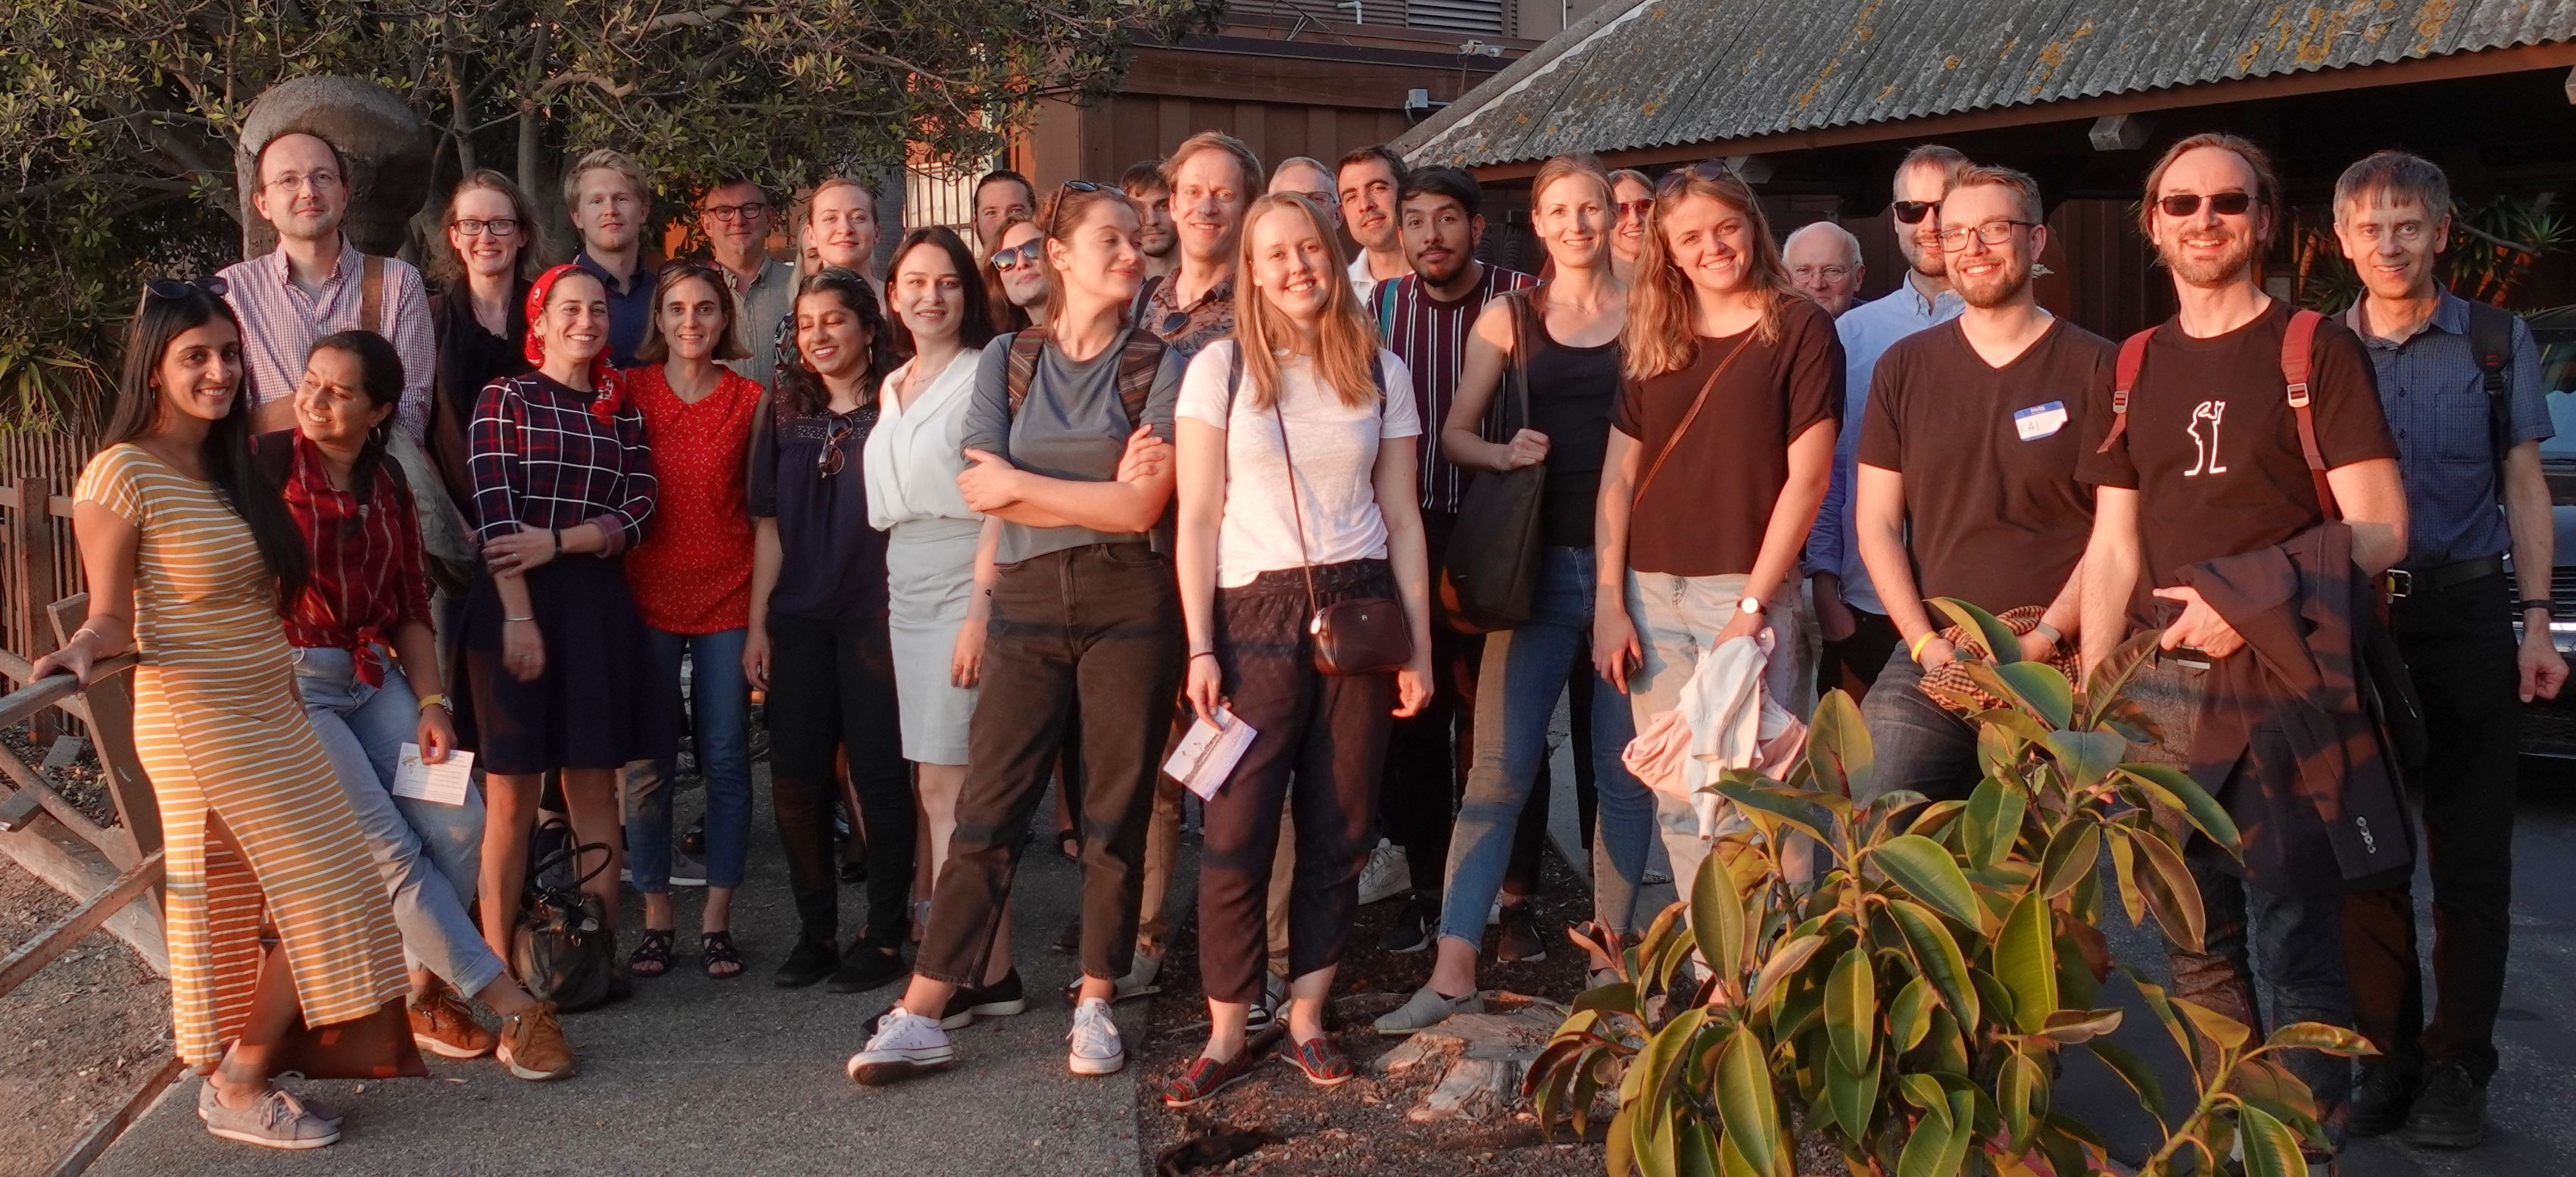 Many of the workshop participants gathered to see the sunset in the Berkeley marina before the final workshop dinner.